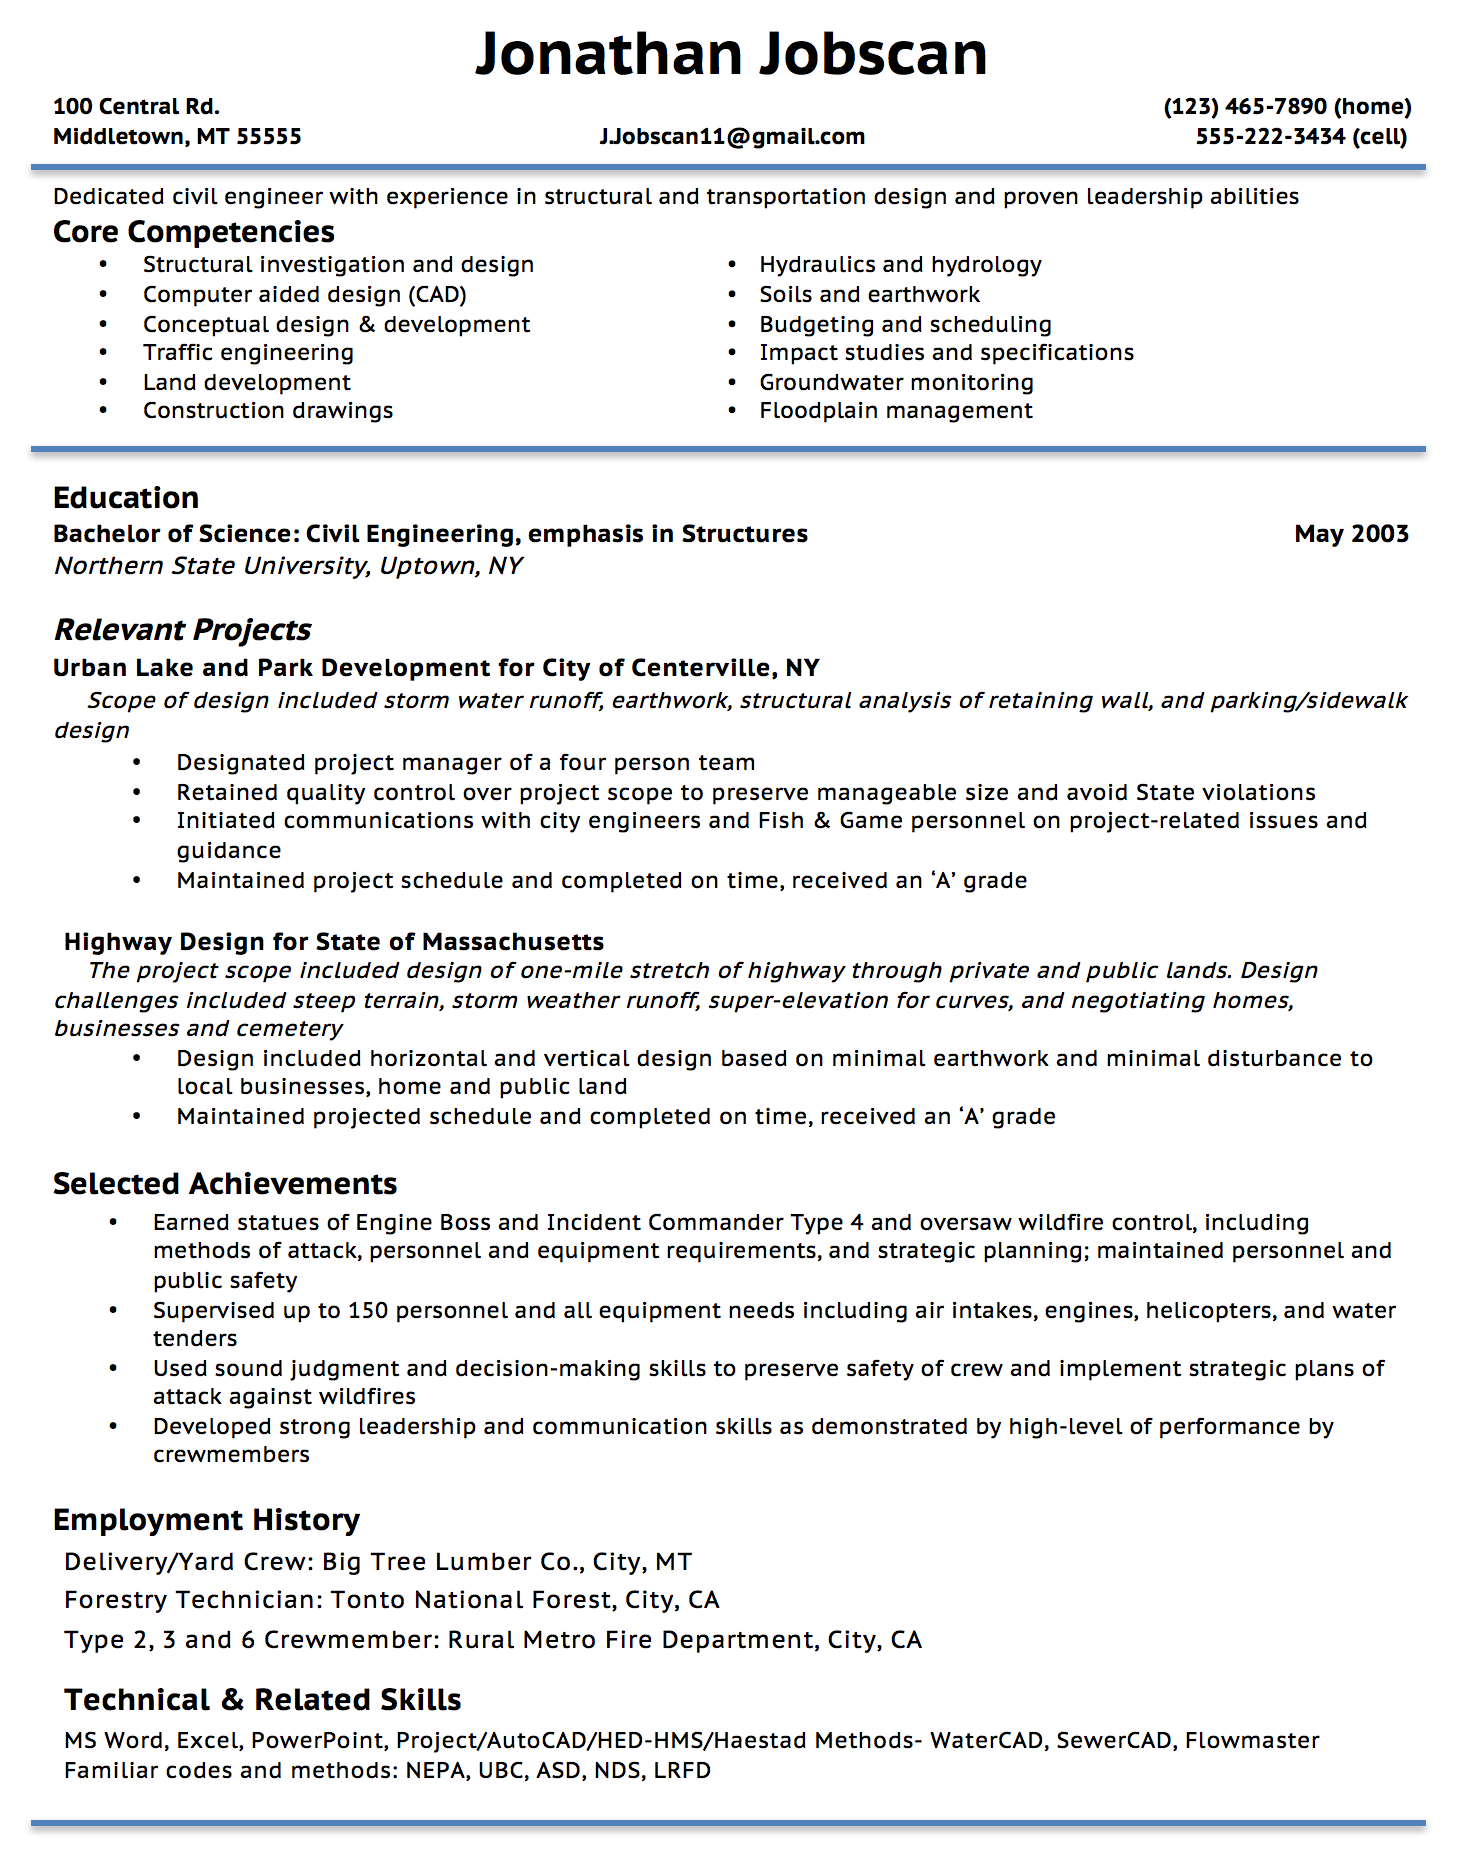 Opposenewapstandardsus  Fascinating Resume Writing Guide  Jobscan With Glamorous Example Of A Functional Resume Format With Astonishing Powerpoint Resume Template Also Resume Resource In Addition Resume For Correctional Officer And Electrician Resumes As Well As Updating A Resume Additionally Skills For Retail Resume From Jobscanco With Opposenewapstandardsus  Glamorous Resume Writing Guide  Jobscan With Astonishing Example Of A Functional Resume Format And Fascinating Powerpoint Resume Template Also Resume Resource In Addition Resume For Correctional Officer From Jobscanco